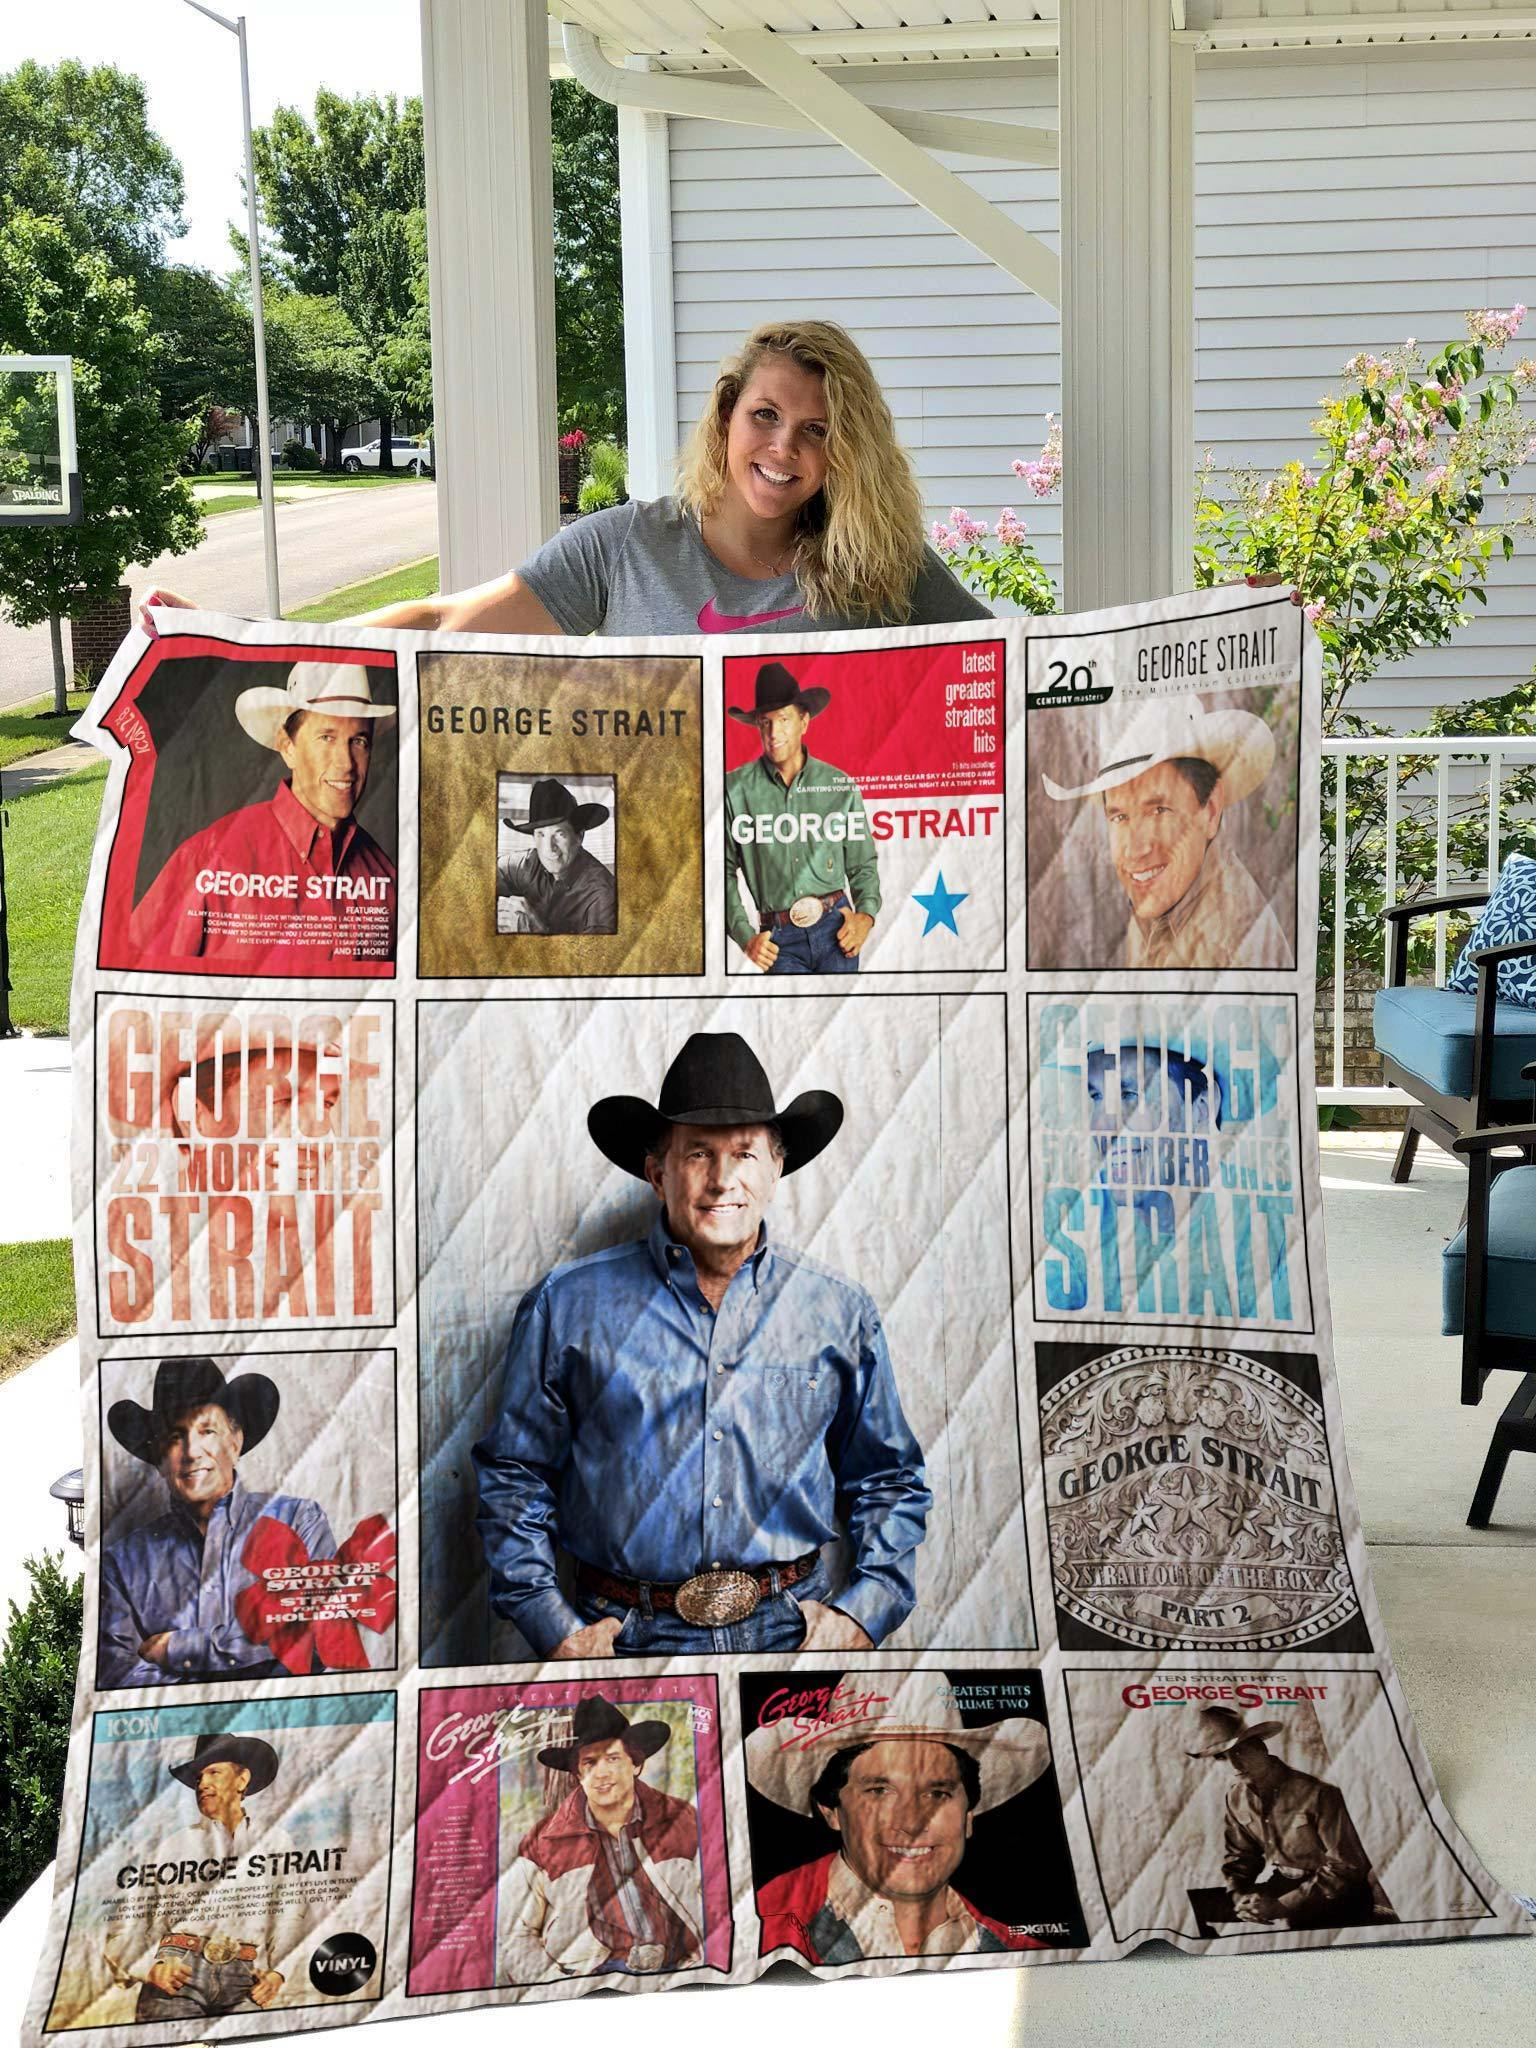 George strait complication albums quilt 2